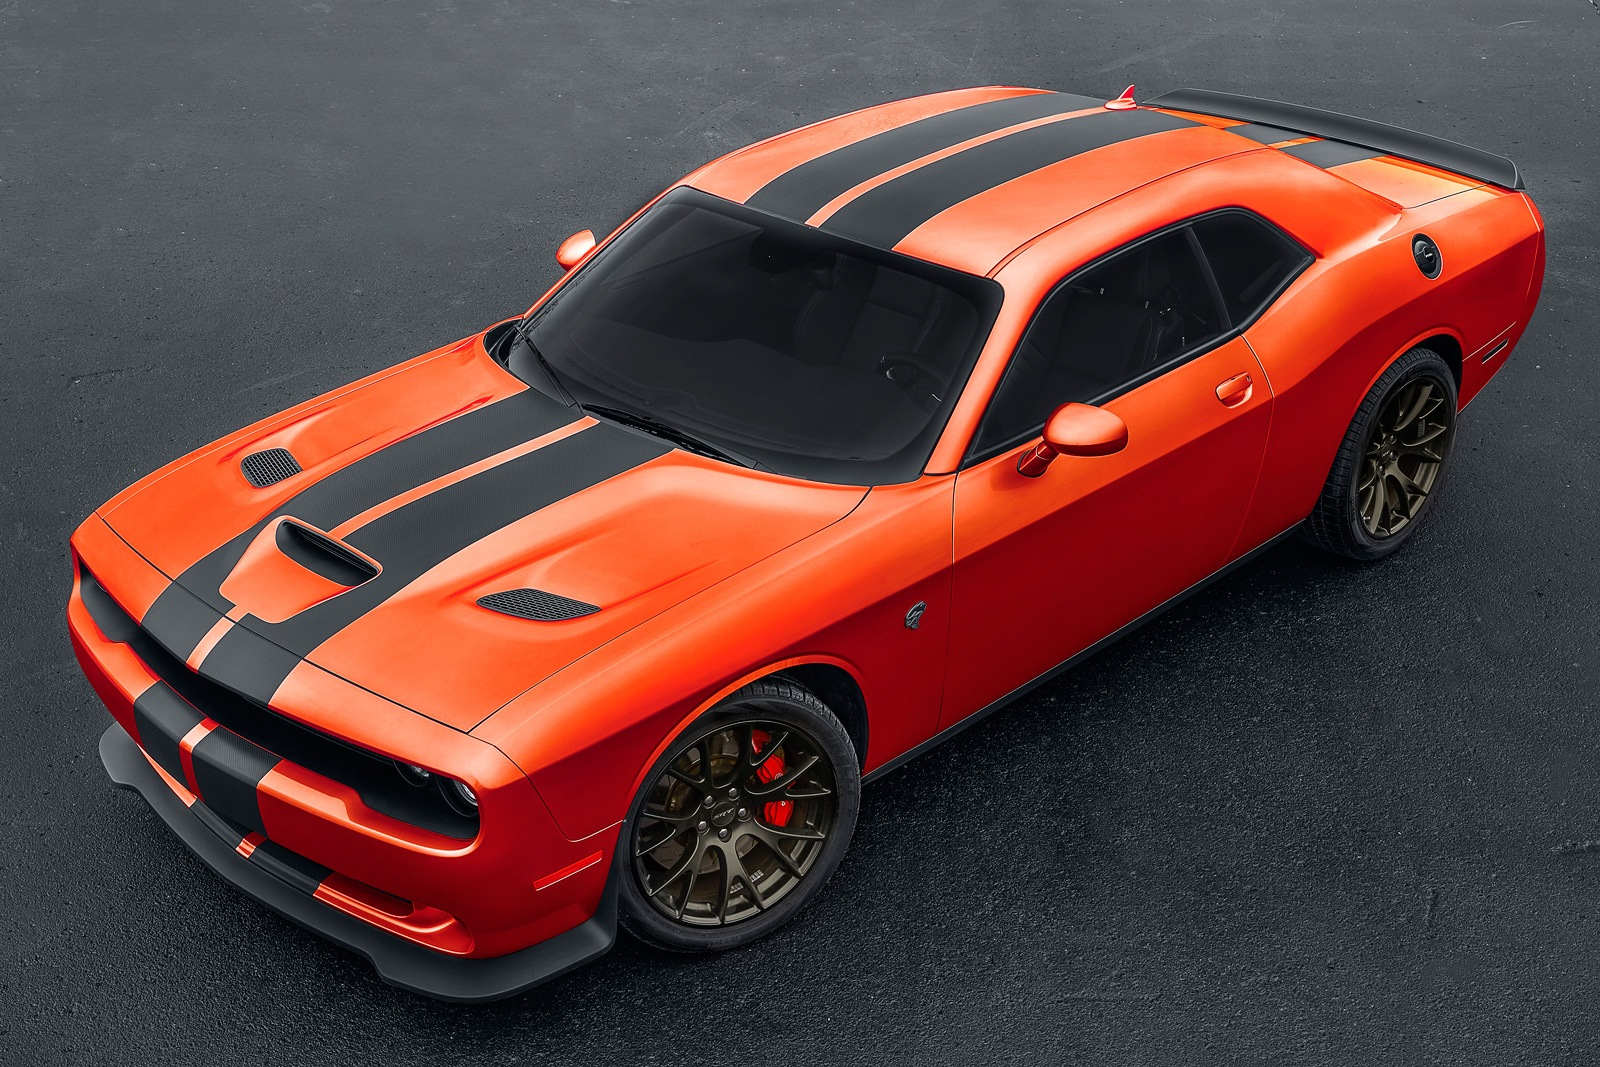 2020 Dodge Challenger Awd Nissan Dodge Cars Review